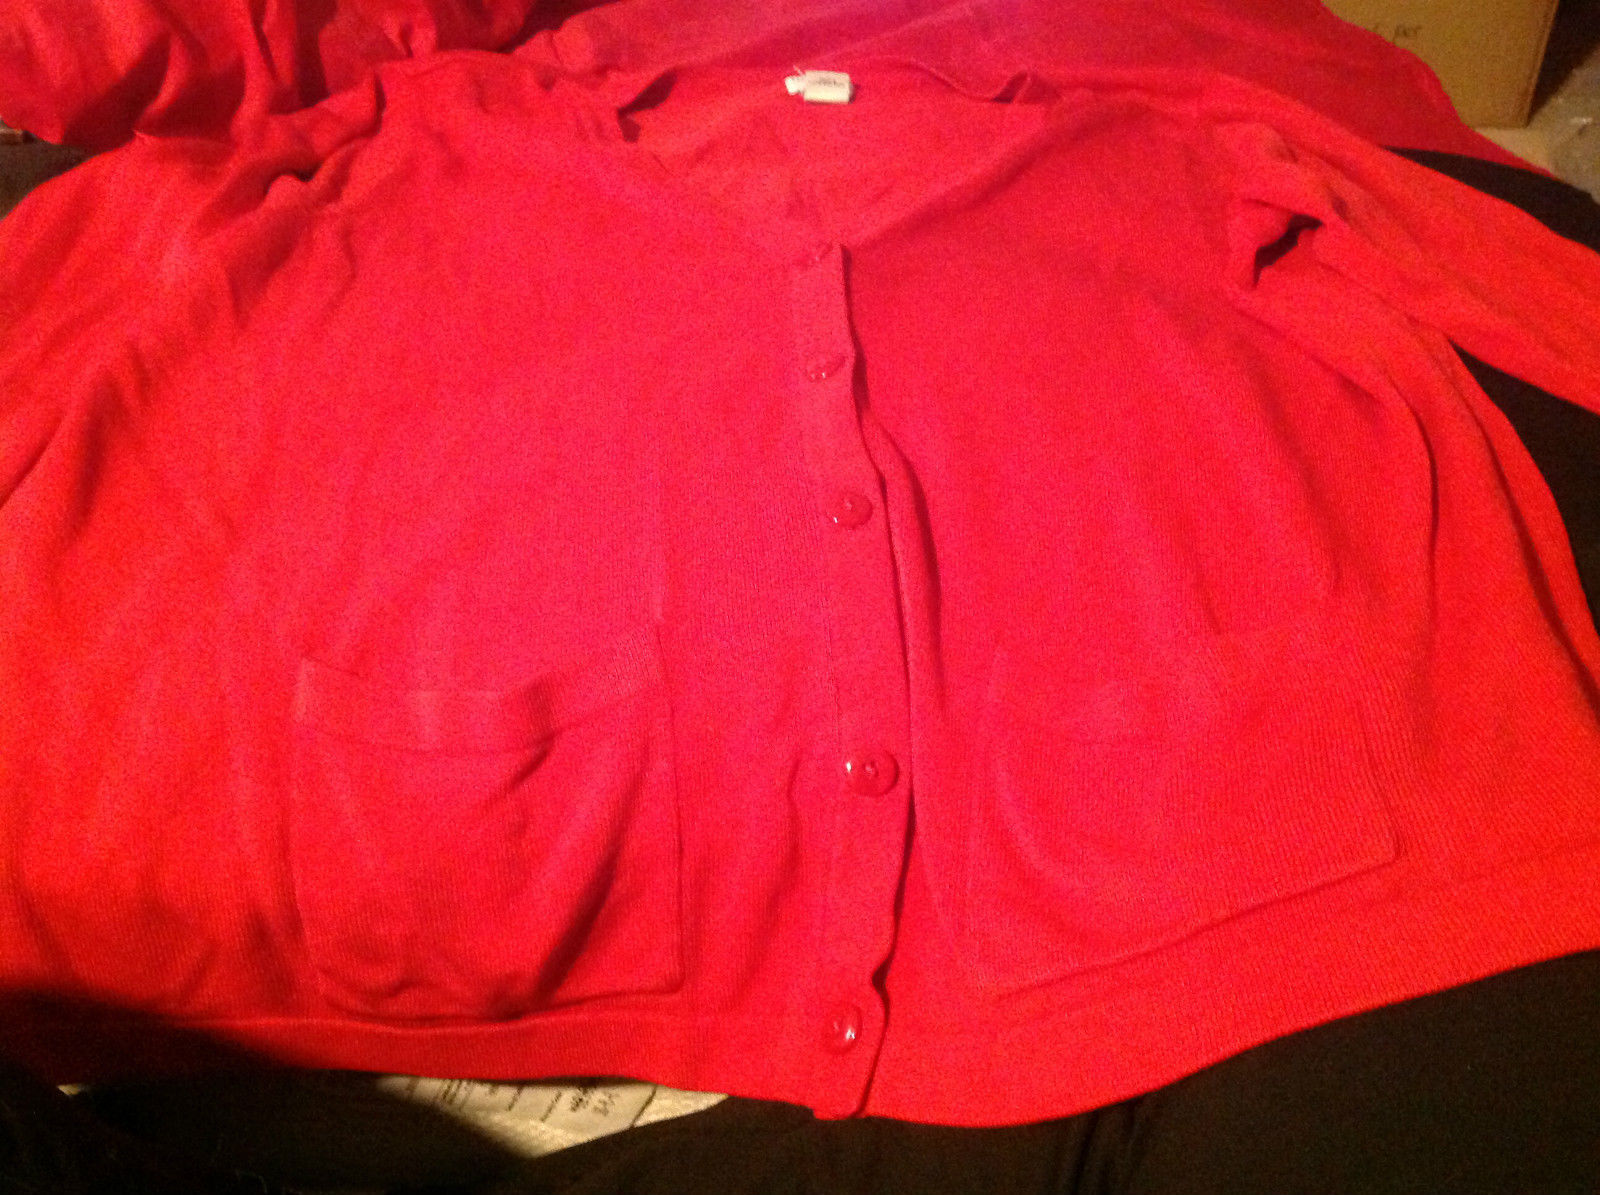 Liz Baker Red Colored Cardigan 2 Pockets Button Front Closure Size 3X